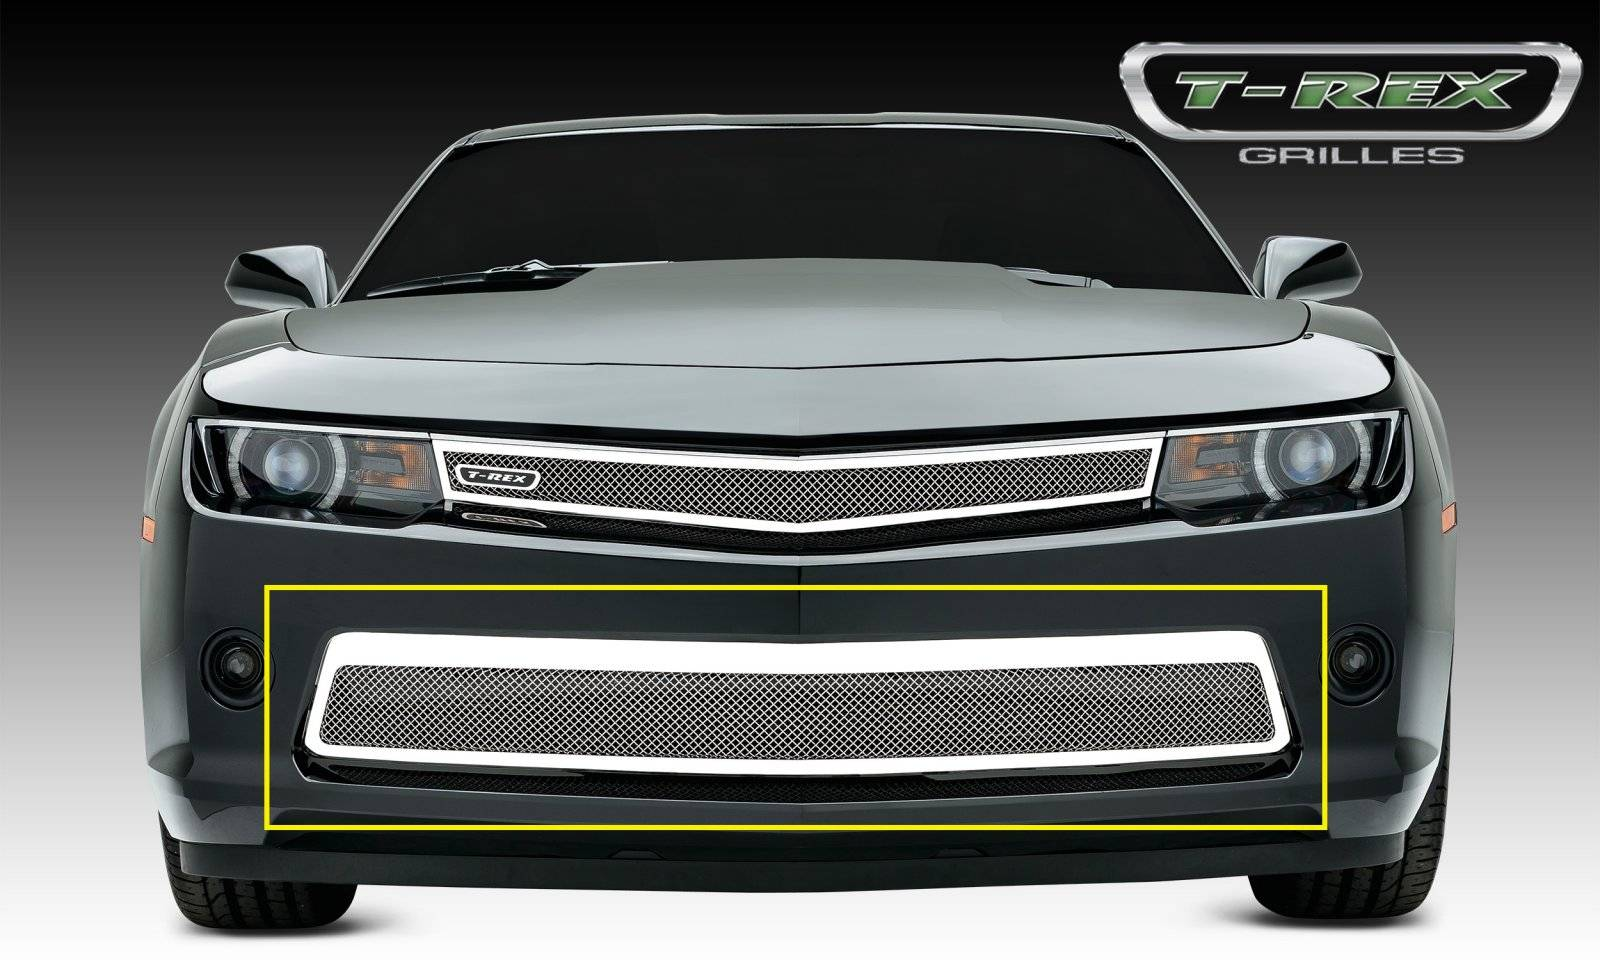 T-REX Grilles - Chevrolet Camaro RS Upper Class, Formed Mesh, Bumper Grille, Replacement, 1 Pc, Polished Stainless Steel - Pt # 55032